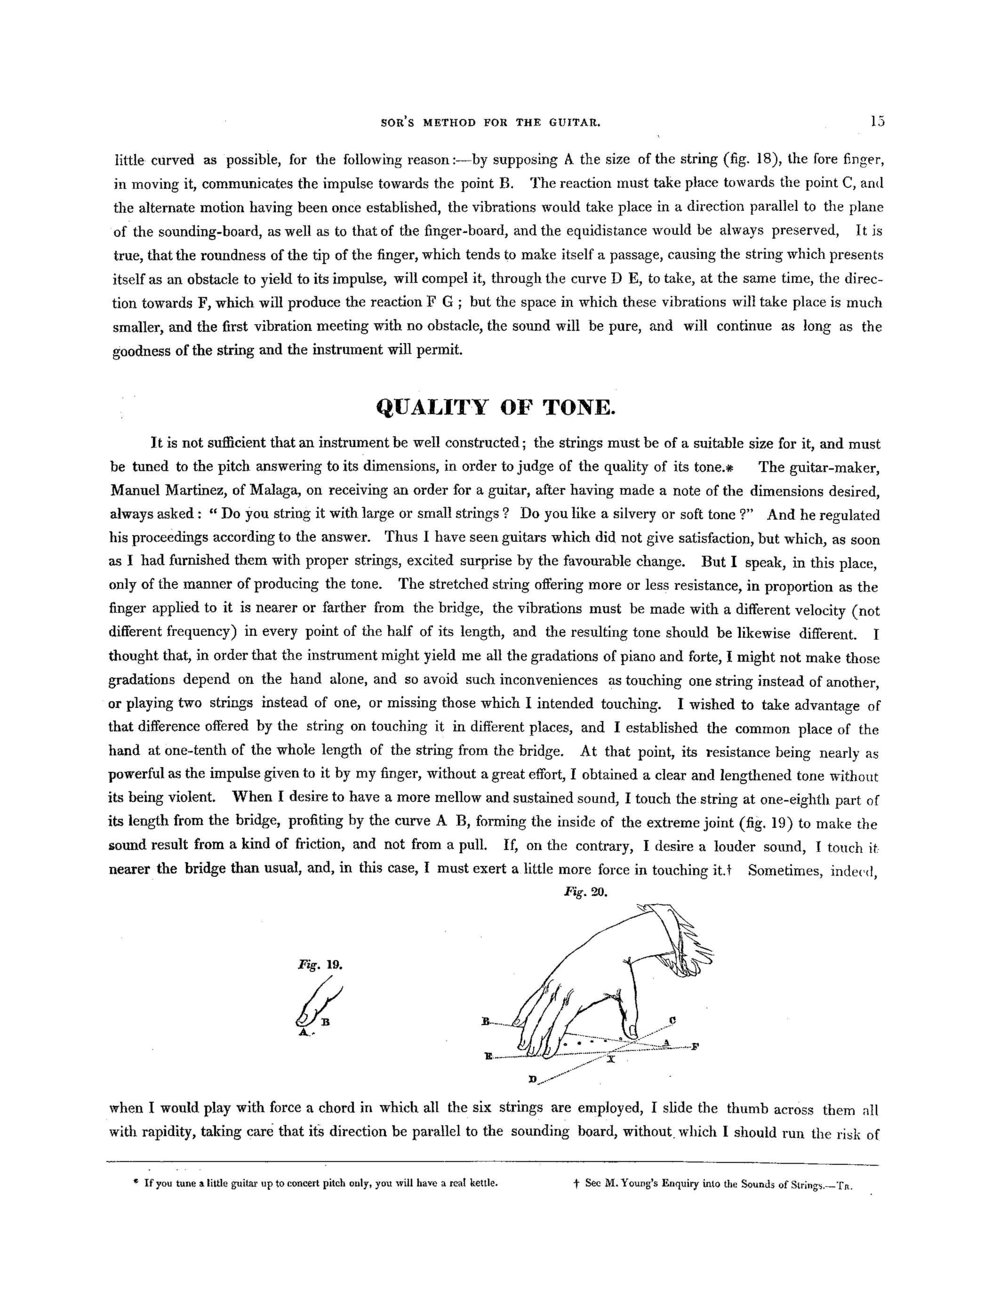 Sor Method - English edition_Page_15.jpg